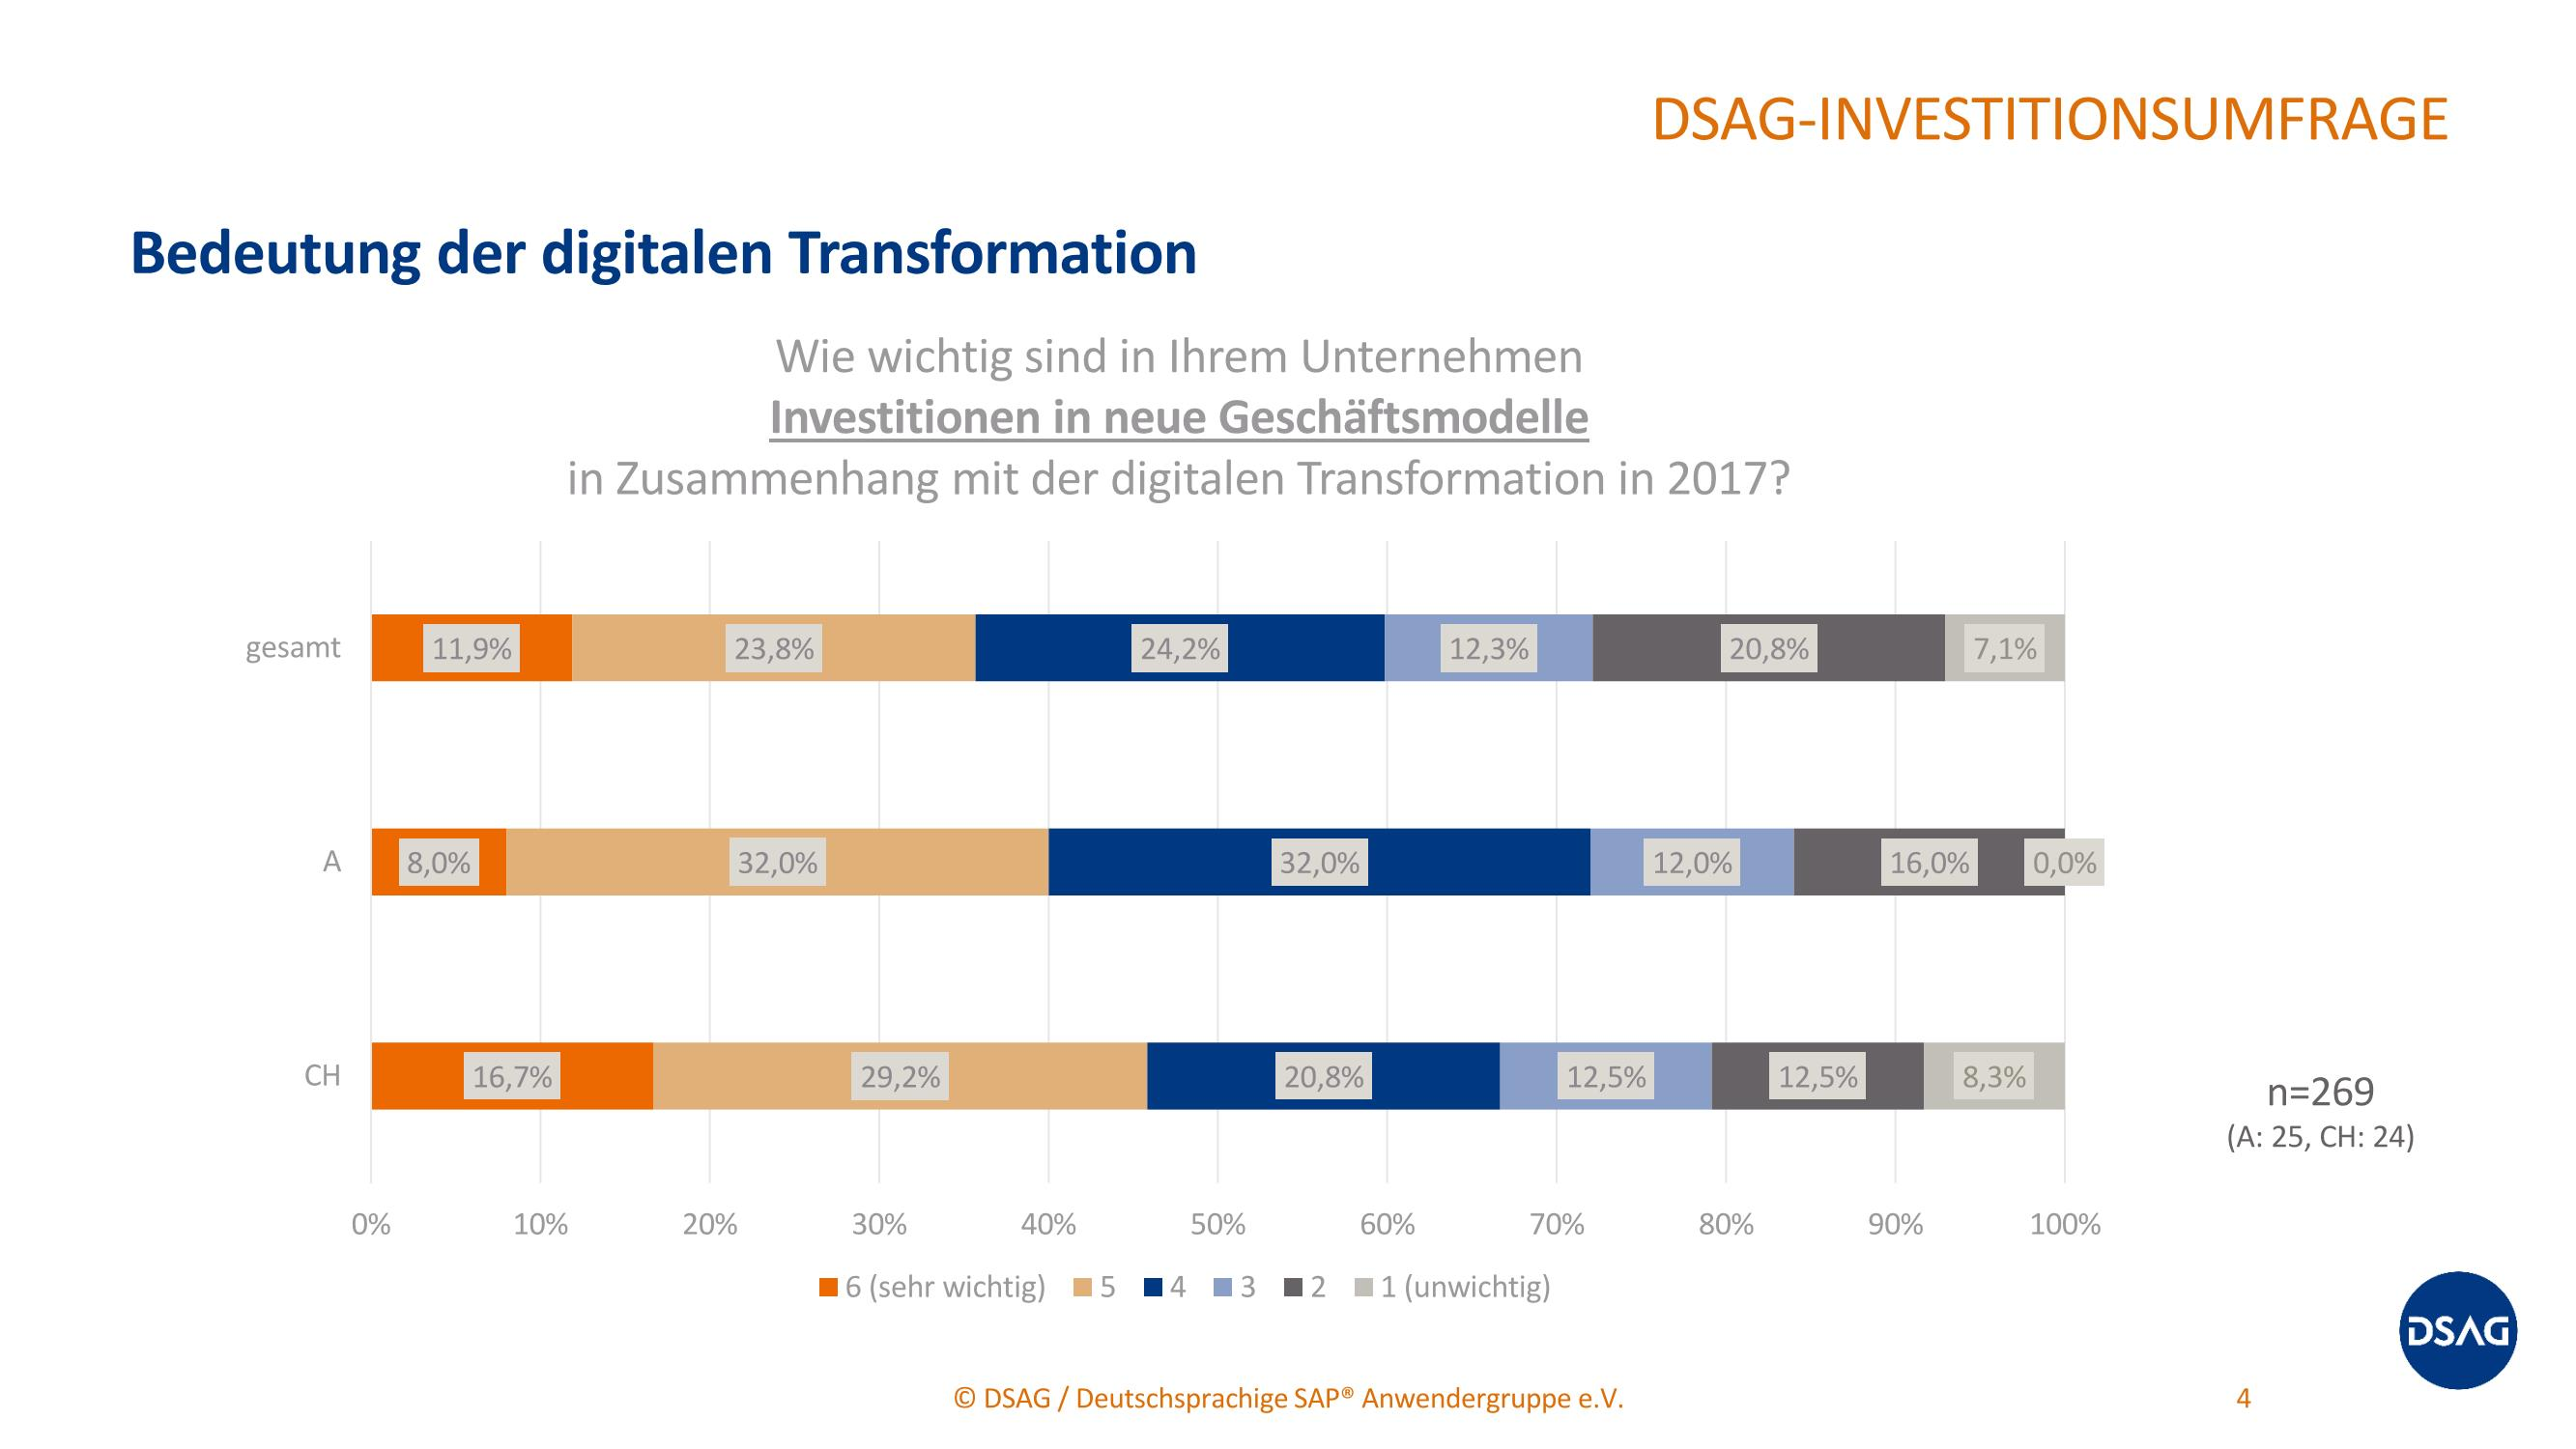 grafik dsag bedeutung digitale transformation